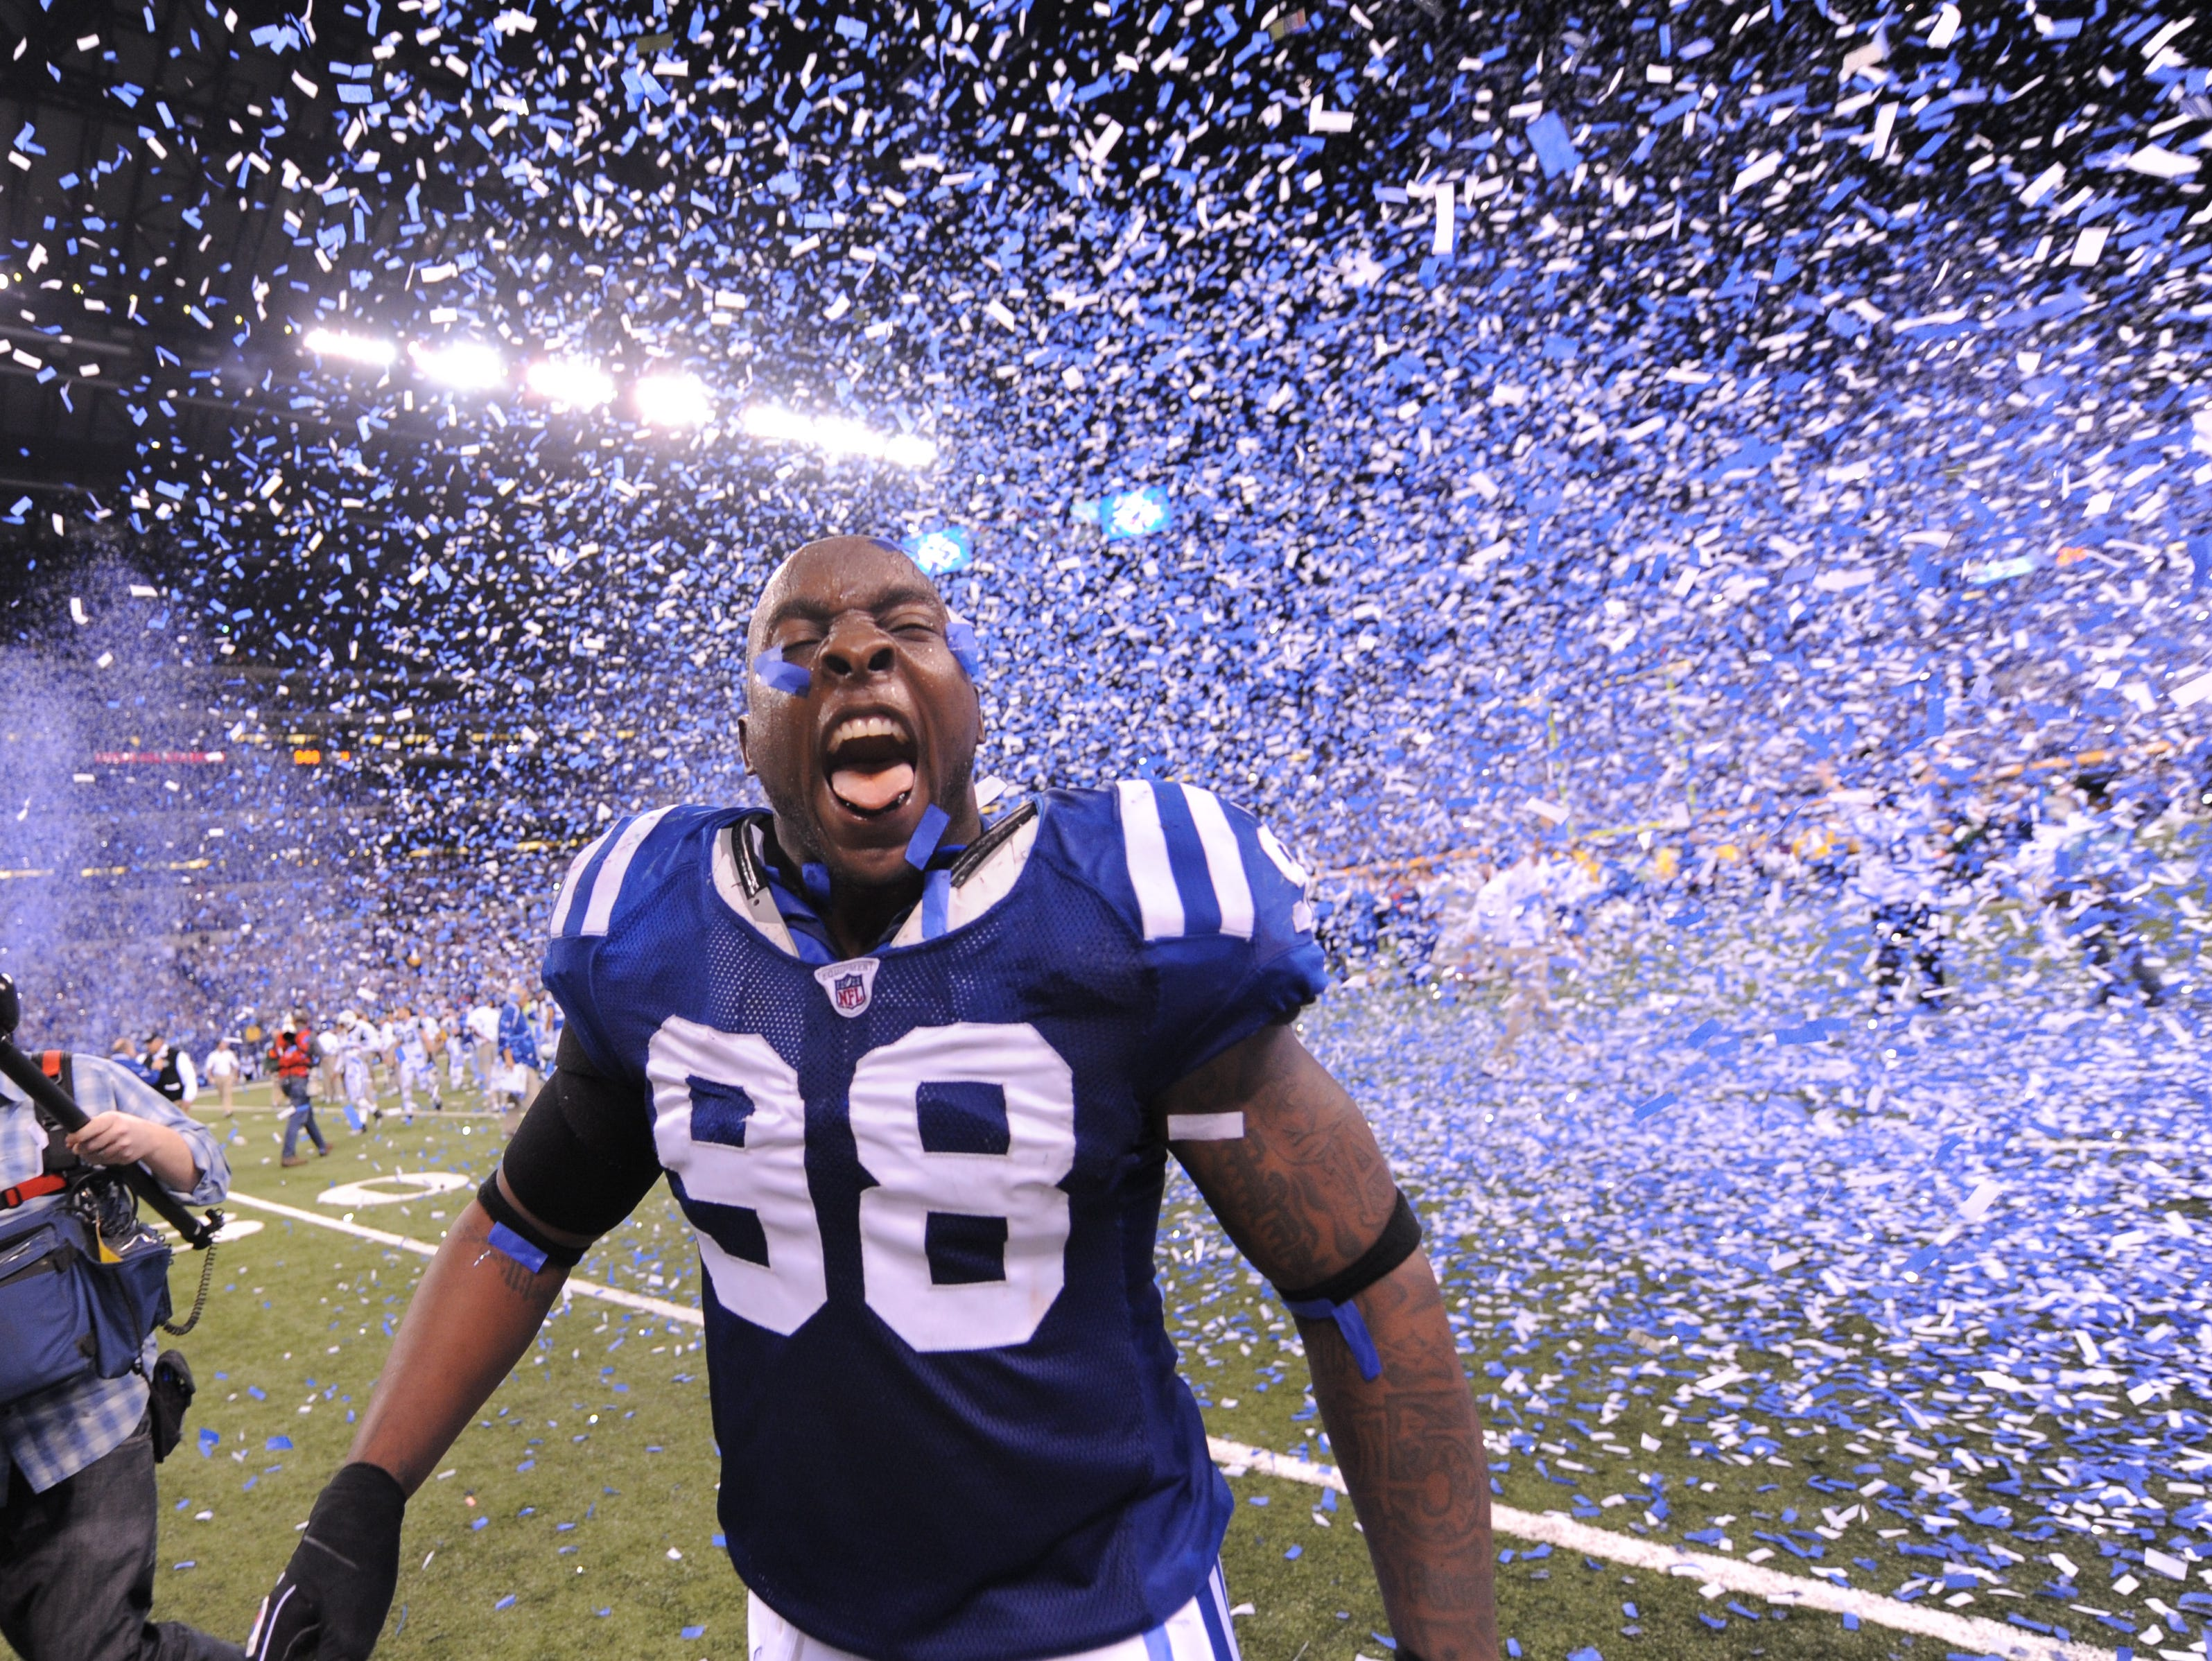 Indianapolis Colts Robert Mathis celebrates winning the AFC Championship game between the Colts and Jets at Lucas Oil Stadium on Sunday, January 24, 2010.